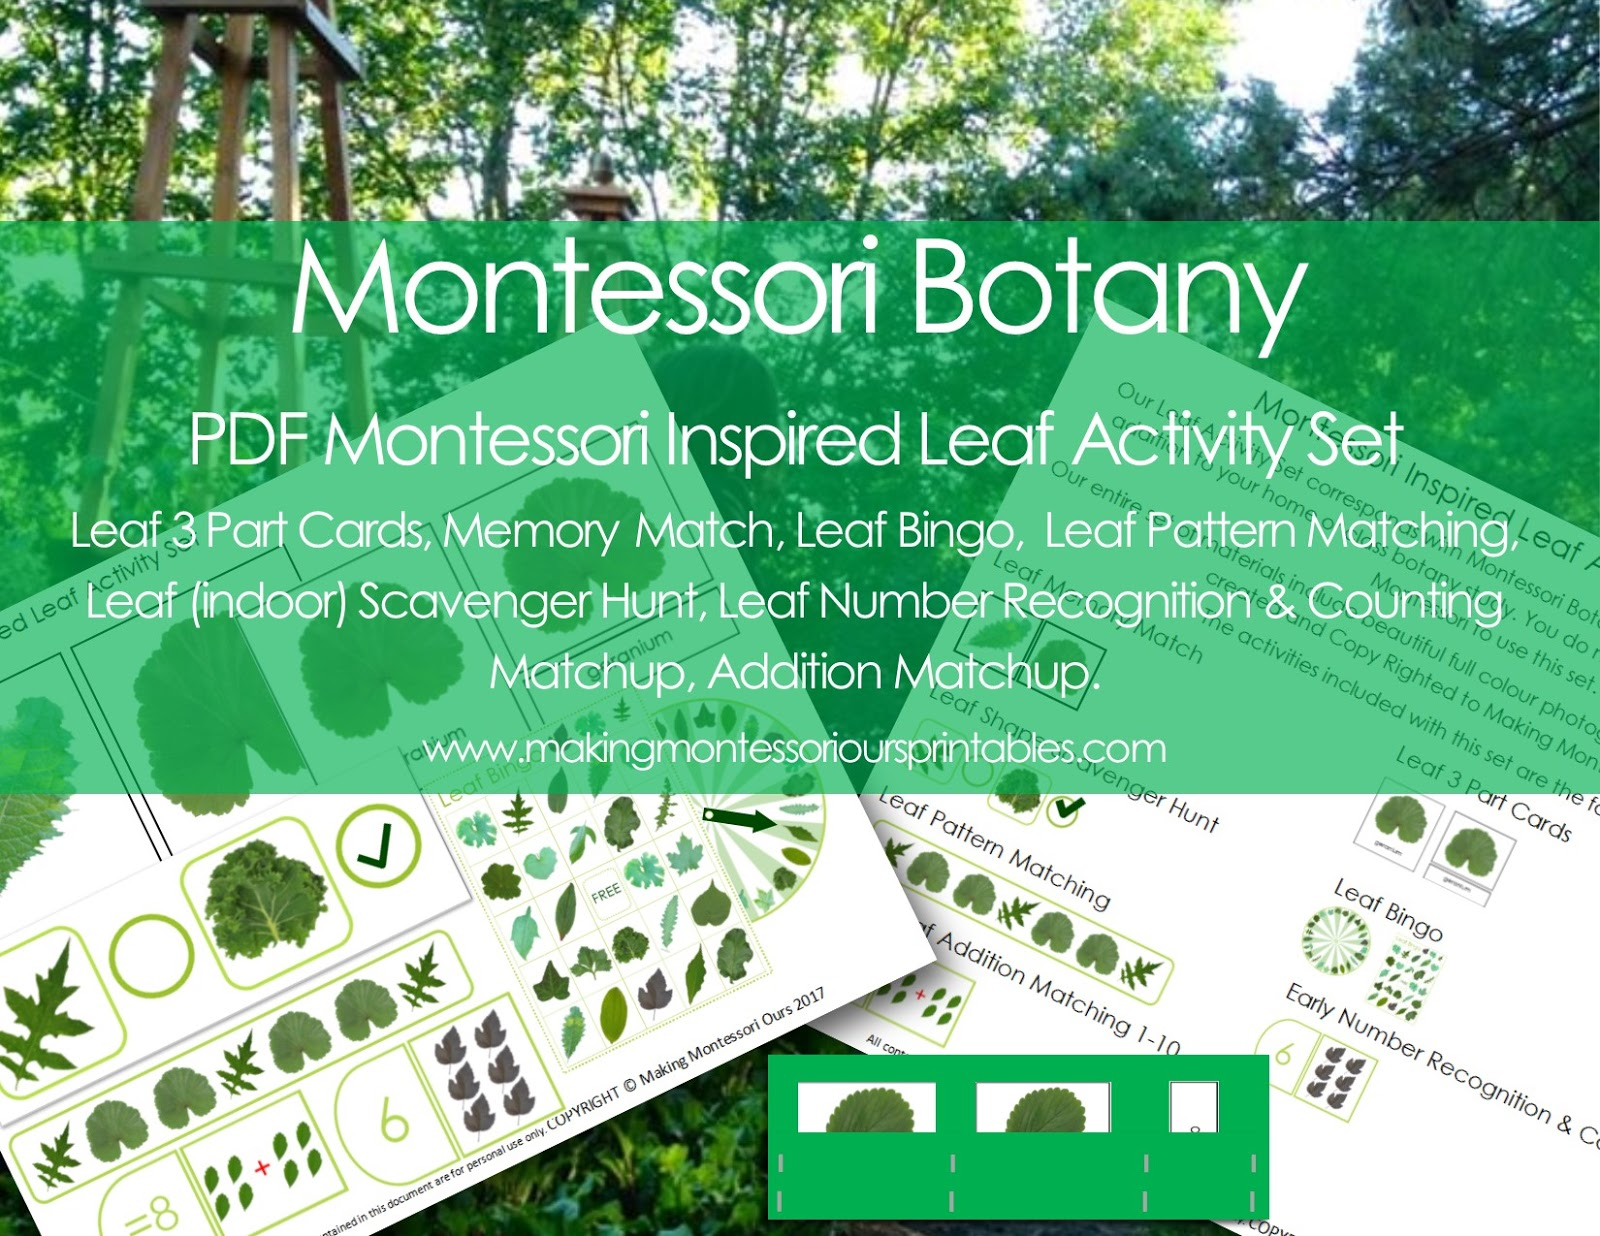 playing with leaves montessori botany activities at home